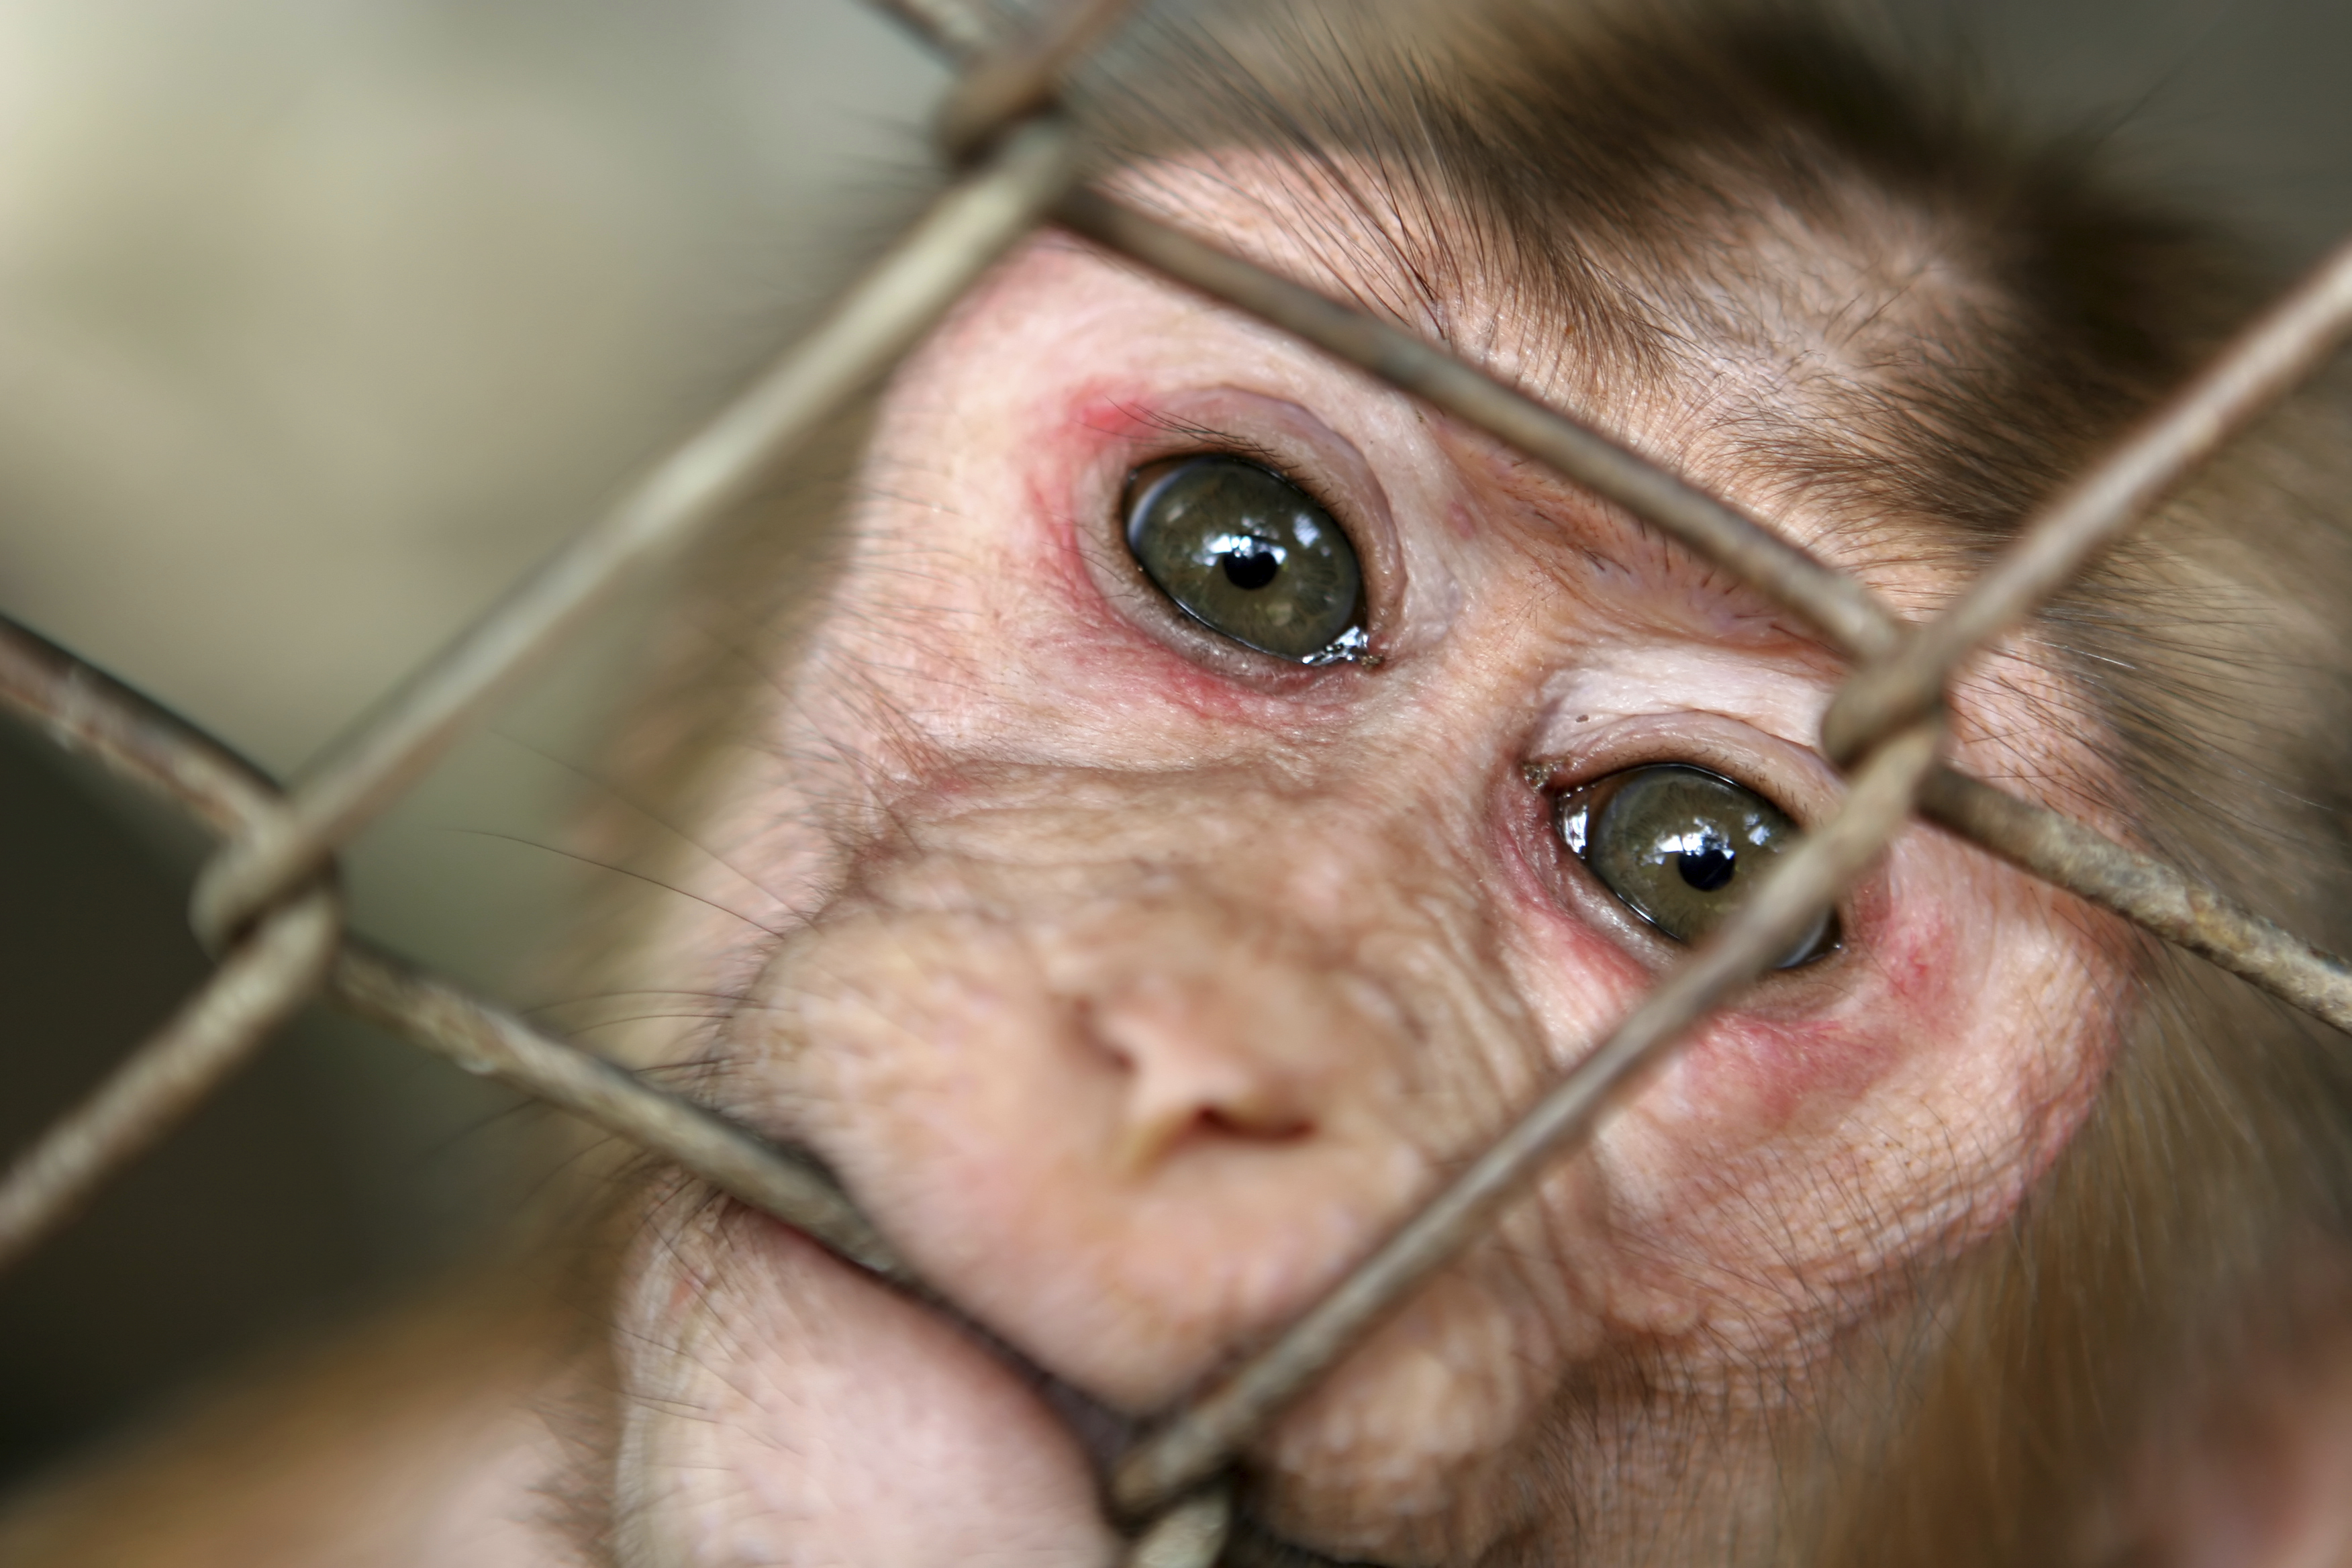 monkey_close_up_biting_bars.jpg